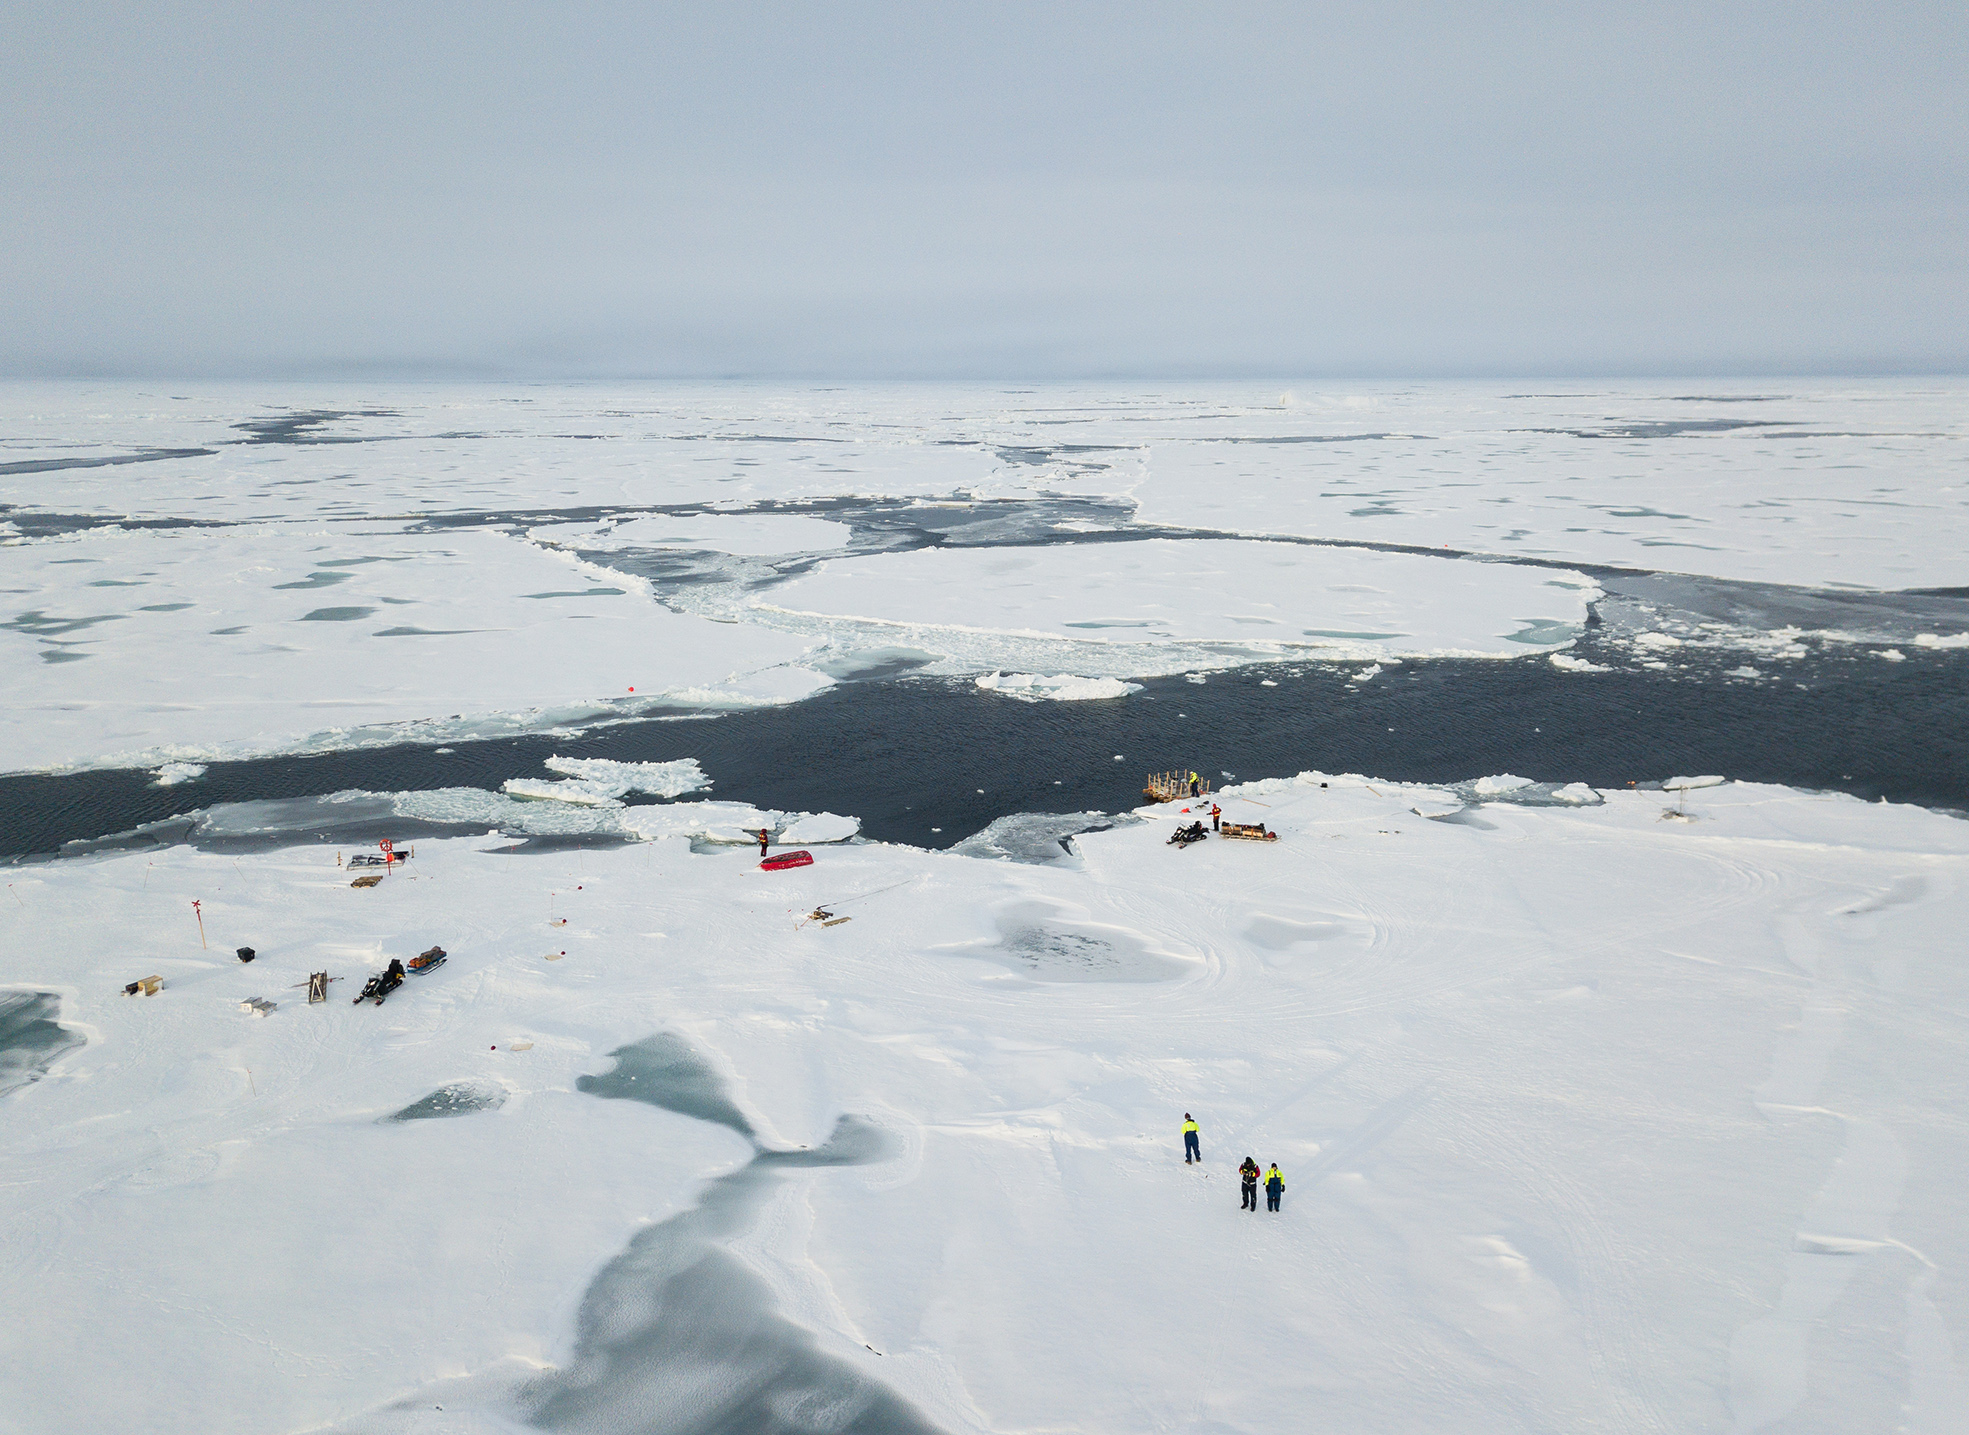 An aerial photograph of the open lead site showing the position of the nearby ice floes, which were in constant motion. Photo: Lars Lehnert